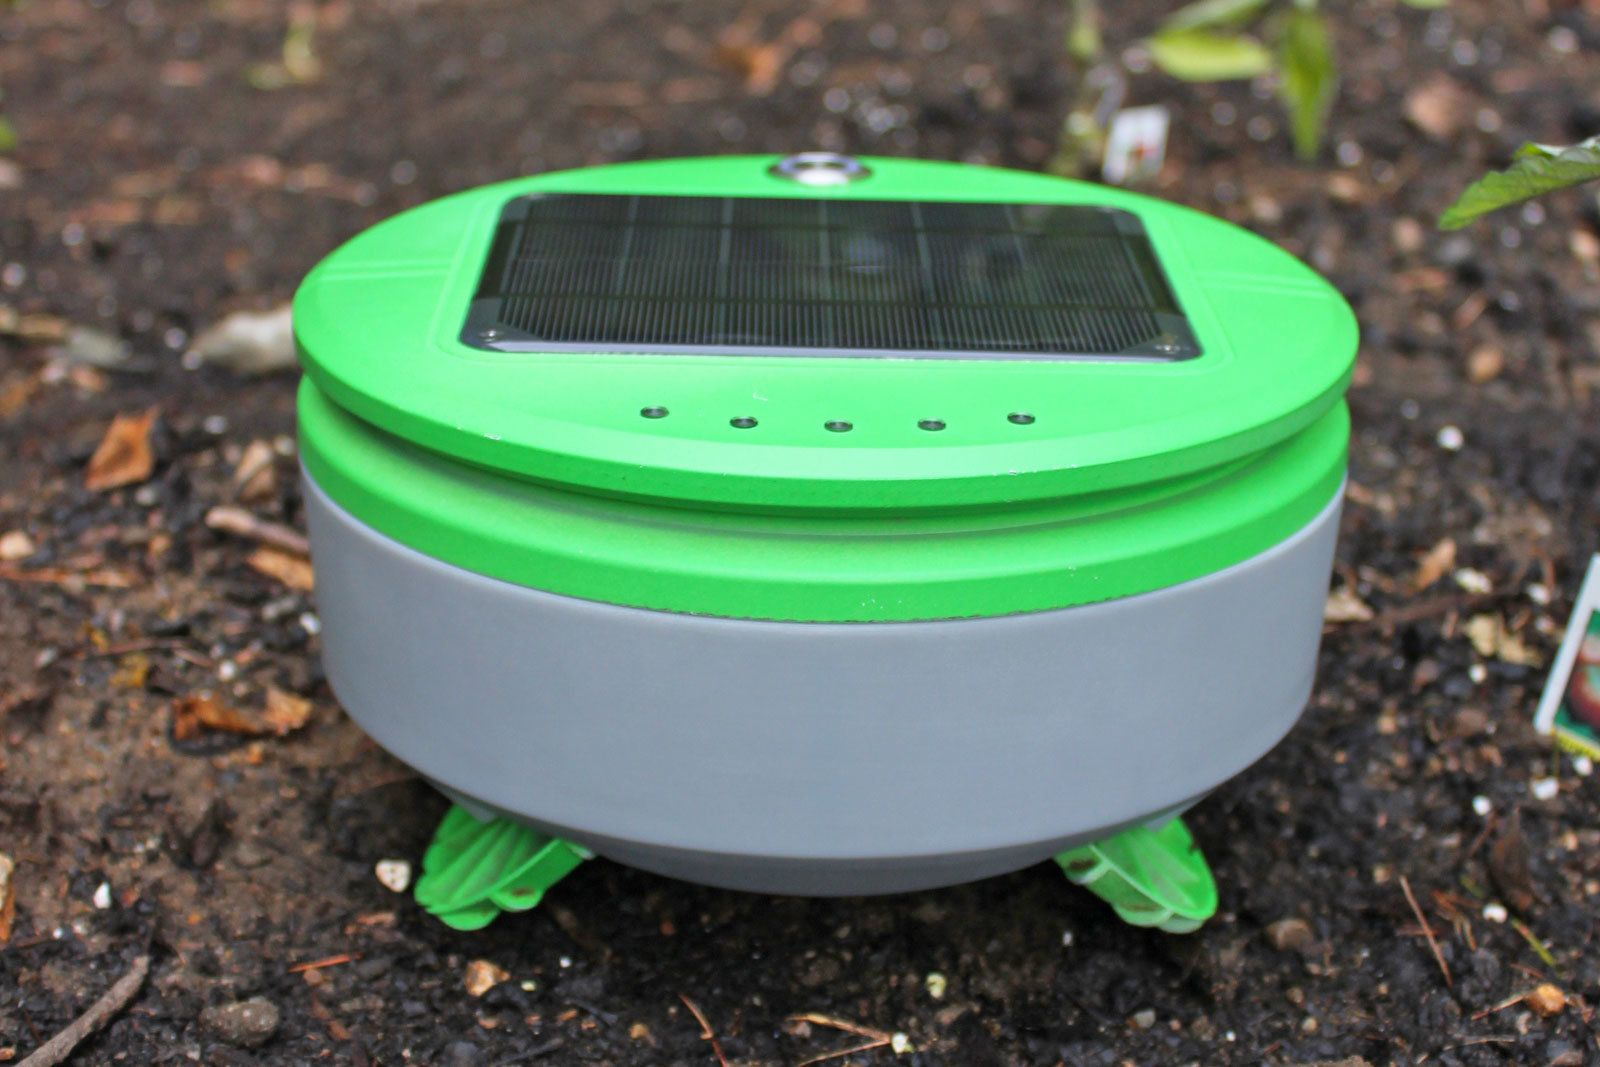 This Plucky Little Robot Will Weed Your Garden For